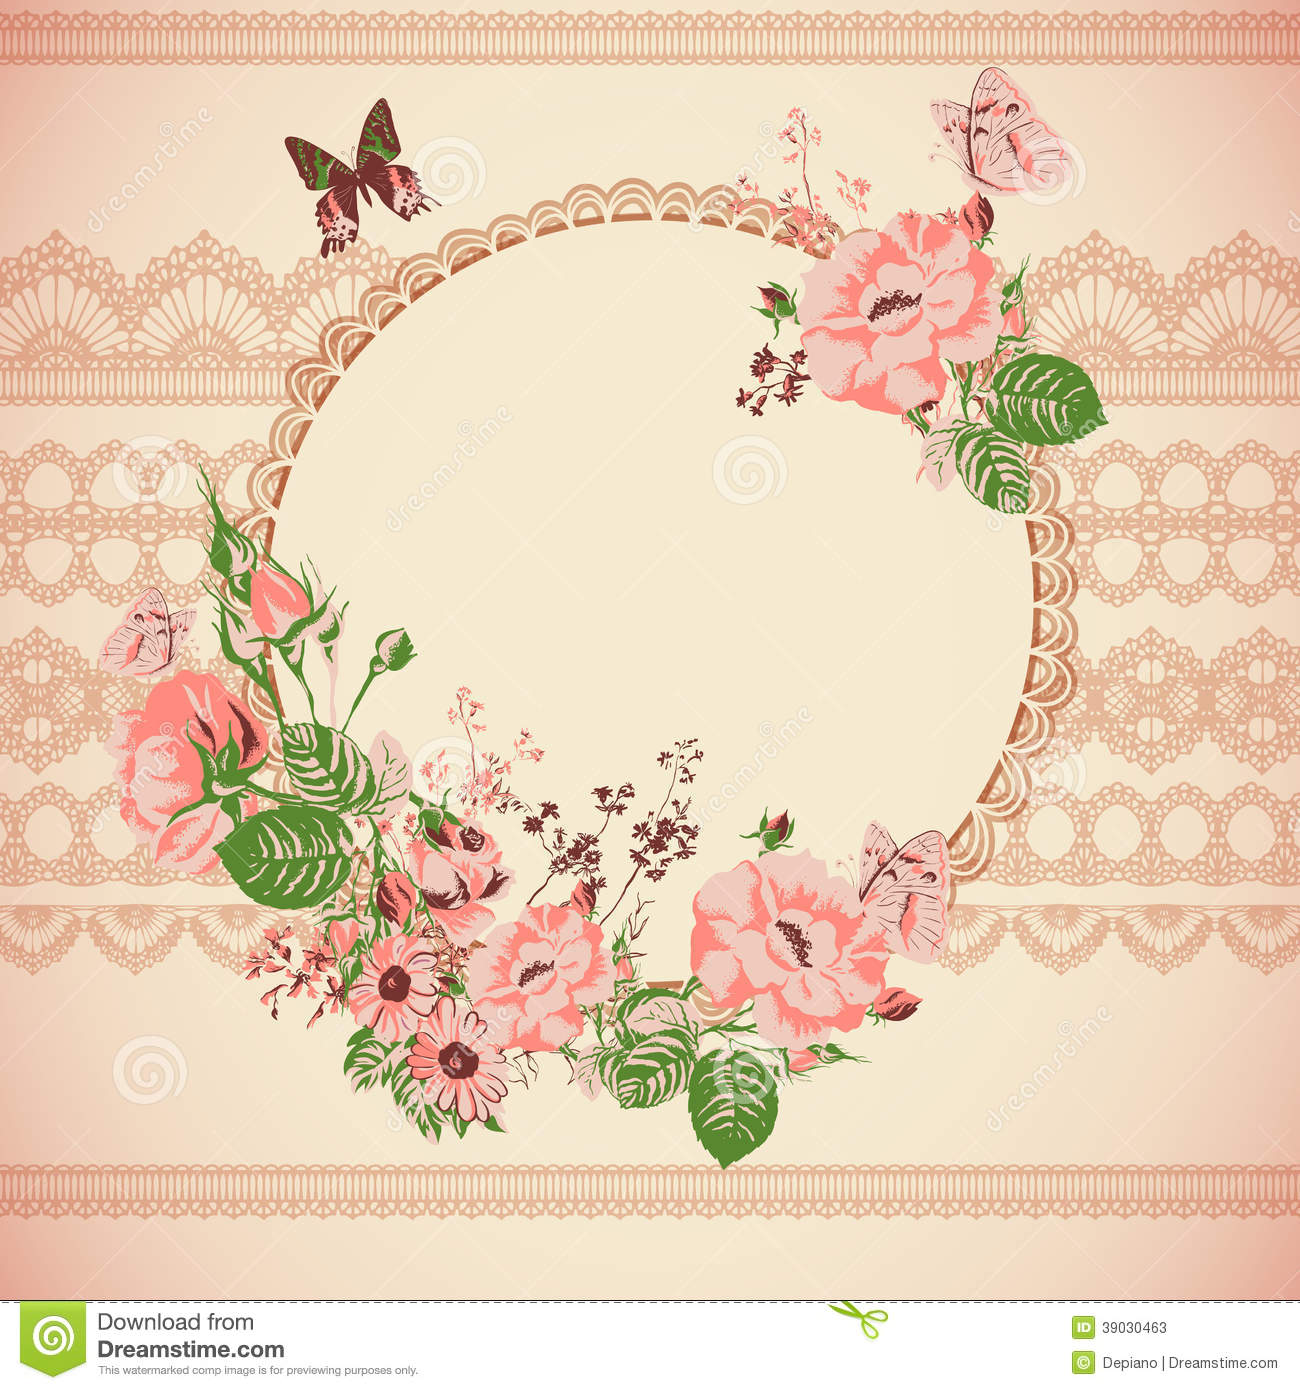 Vintage Floral Lace Background With Roses Stock Vector ...